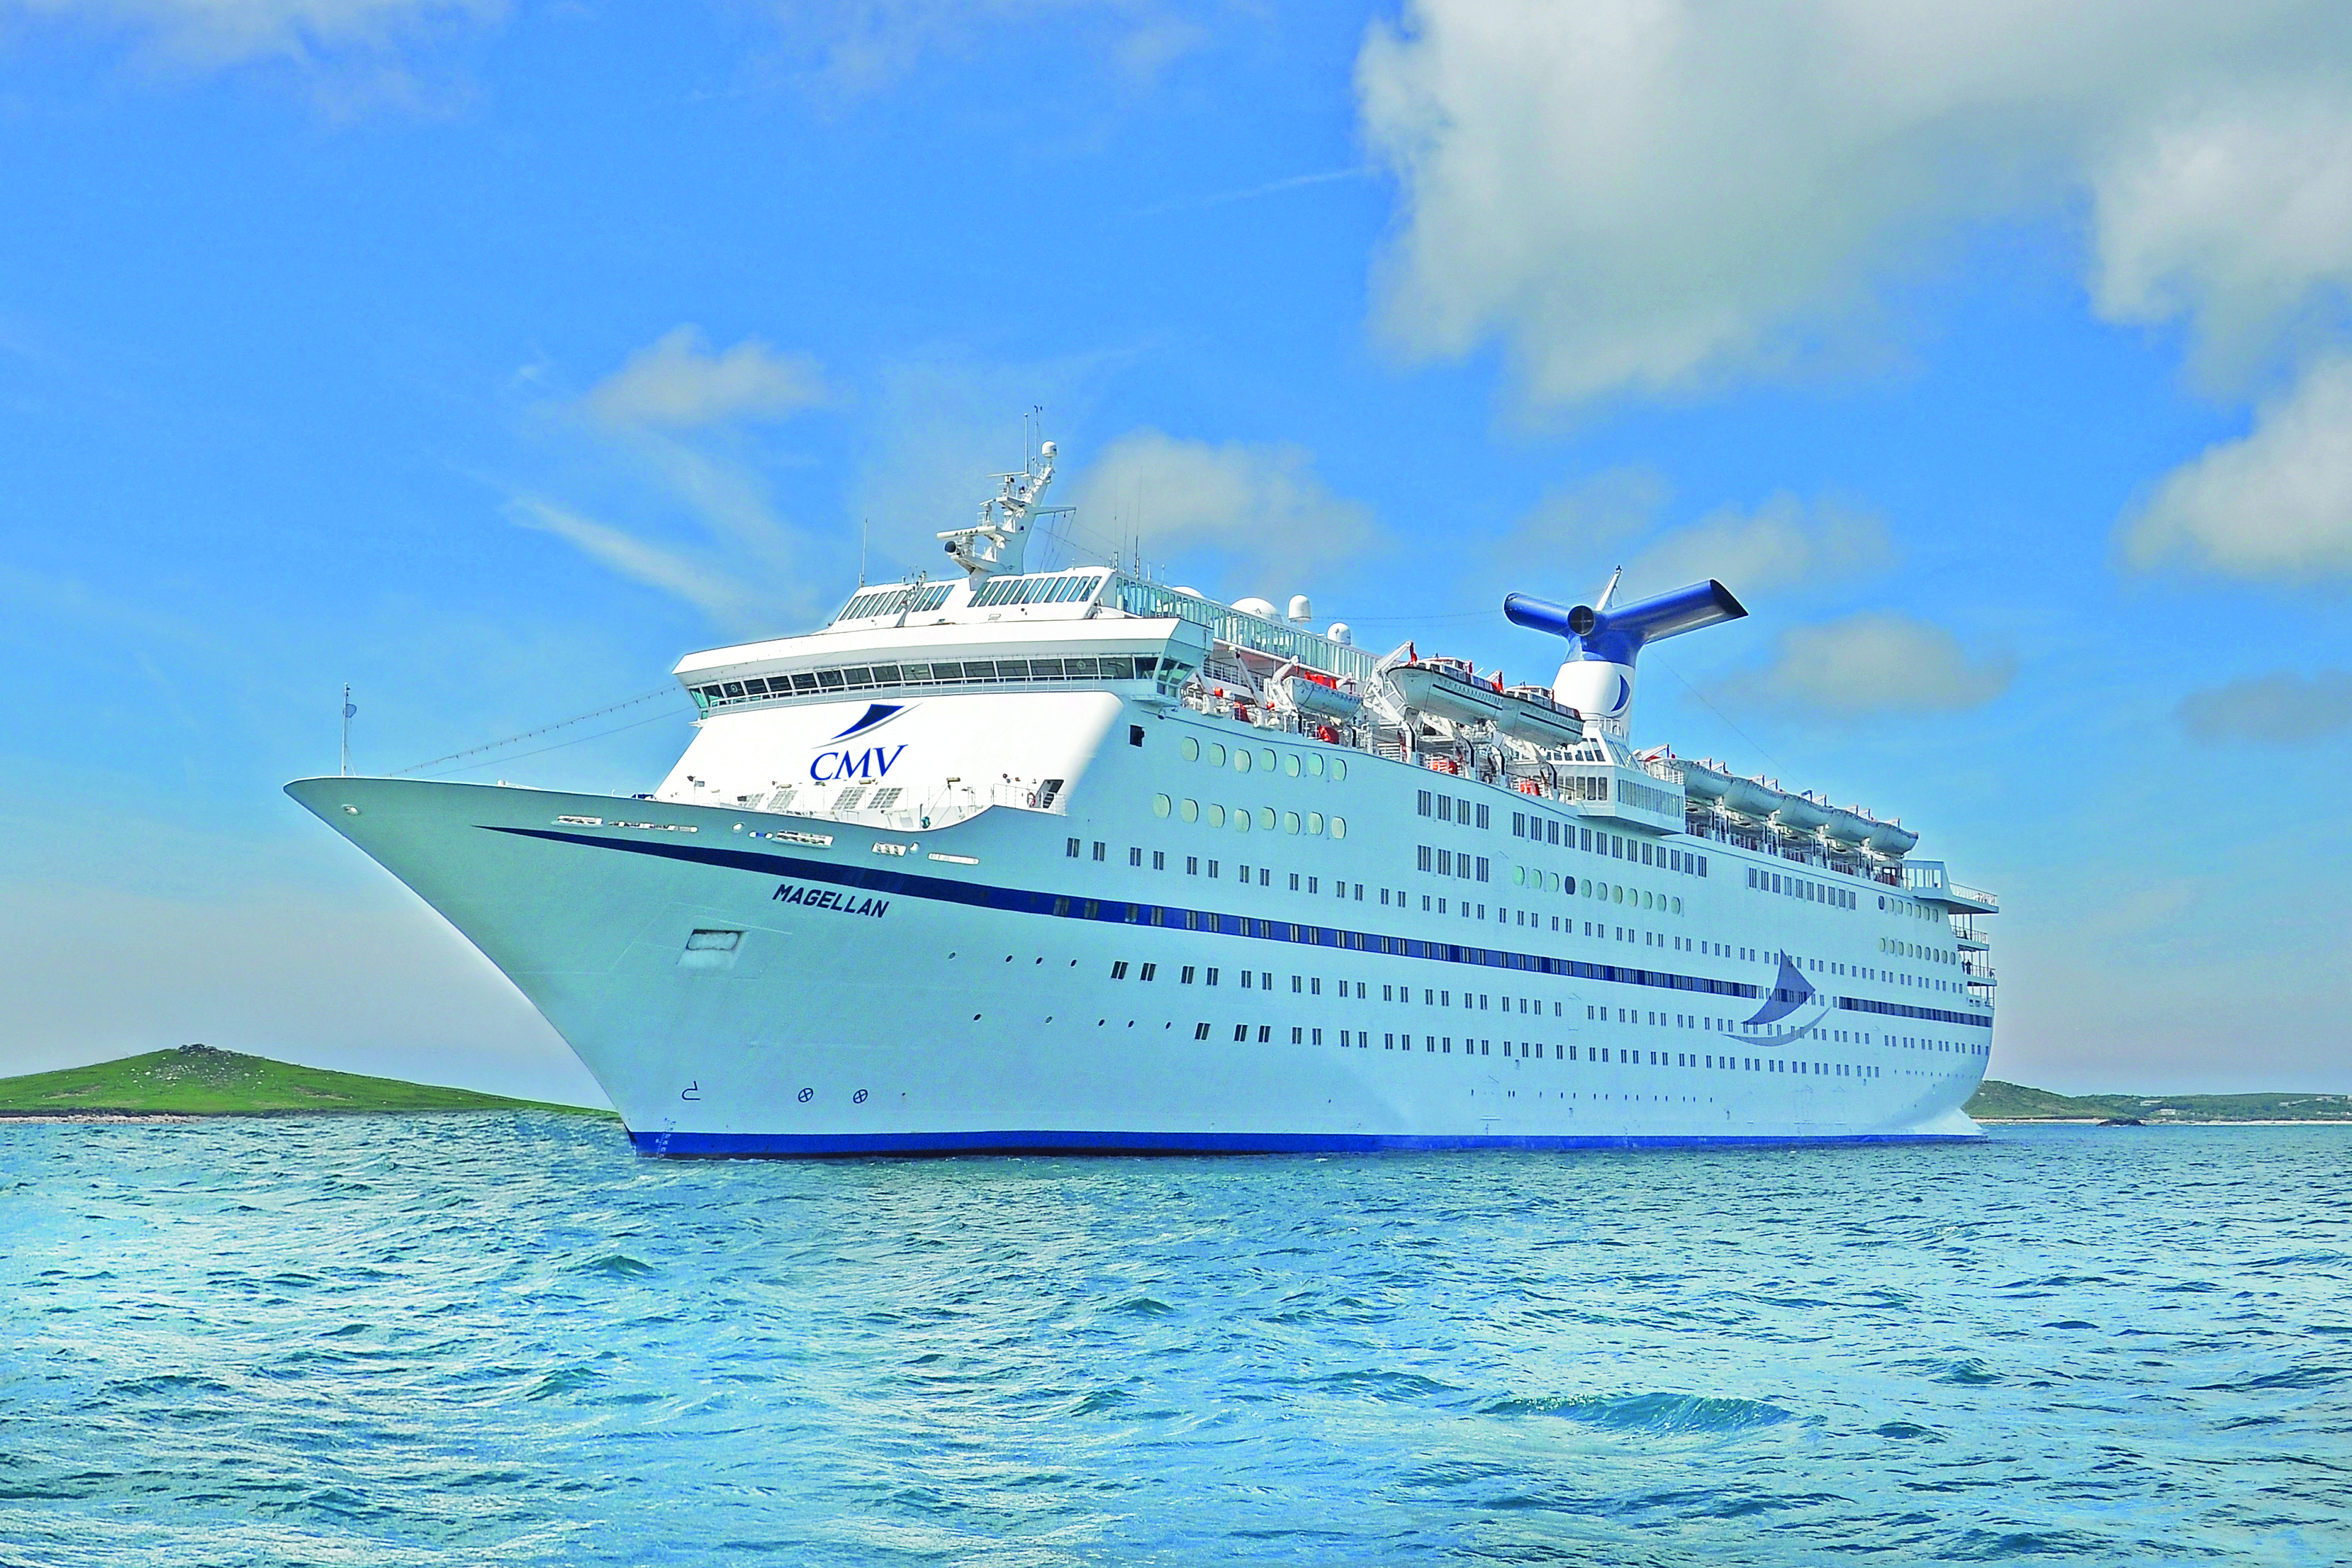 The majestic Magellan will be taking P&J readers on an exclusive tour of Norway and the Scottish Isles in June 2020.